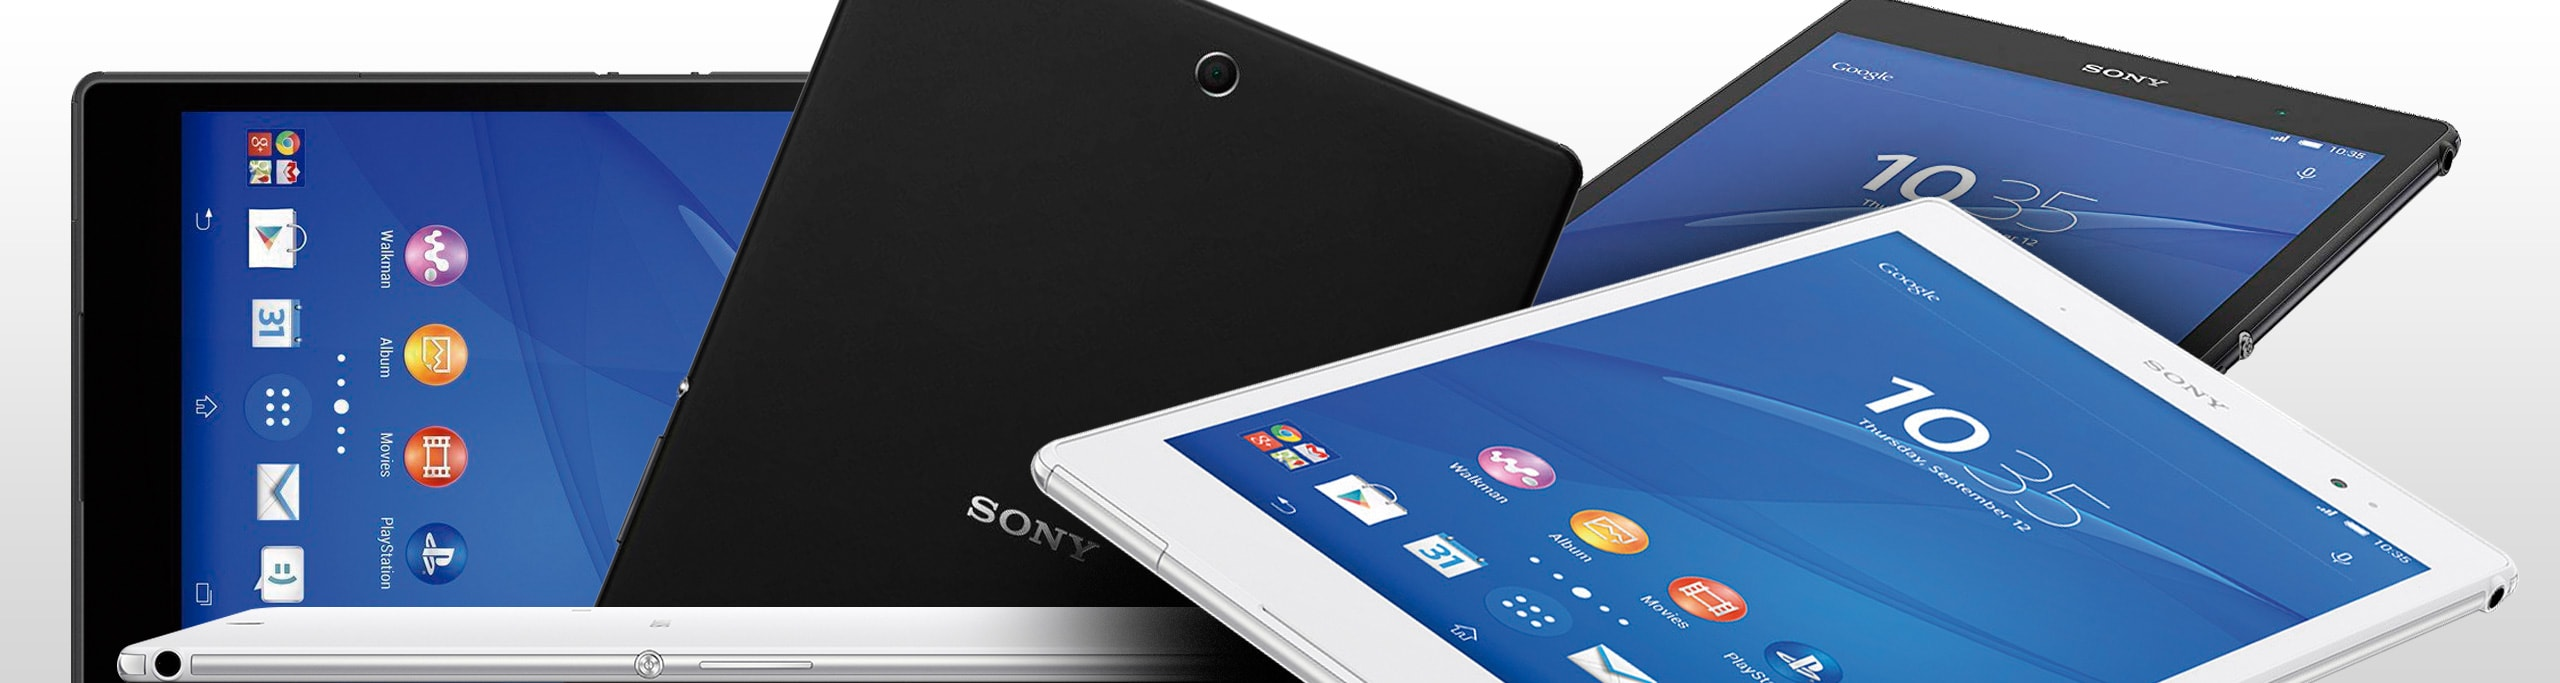 Z3 Tablet Compact